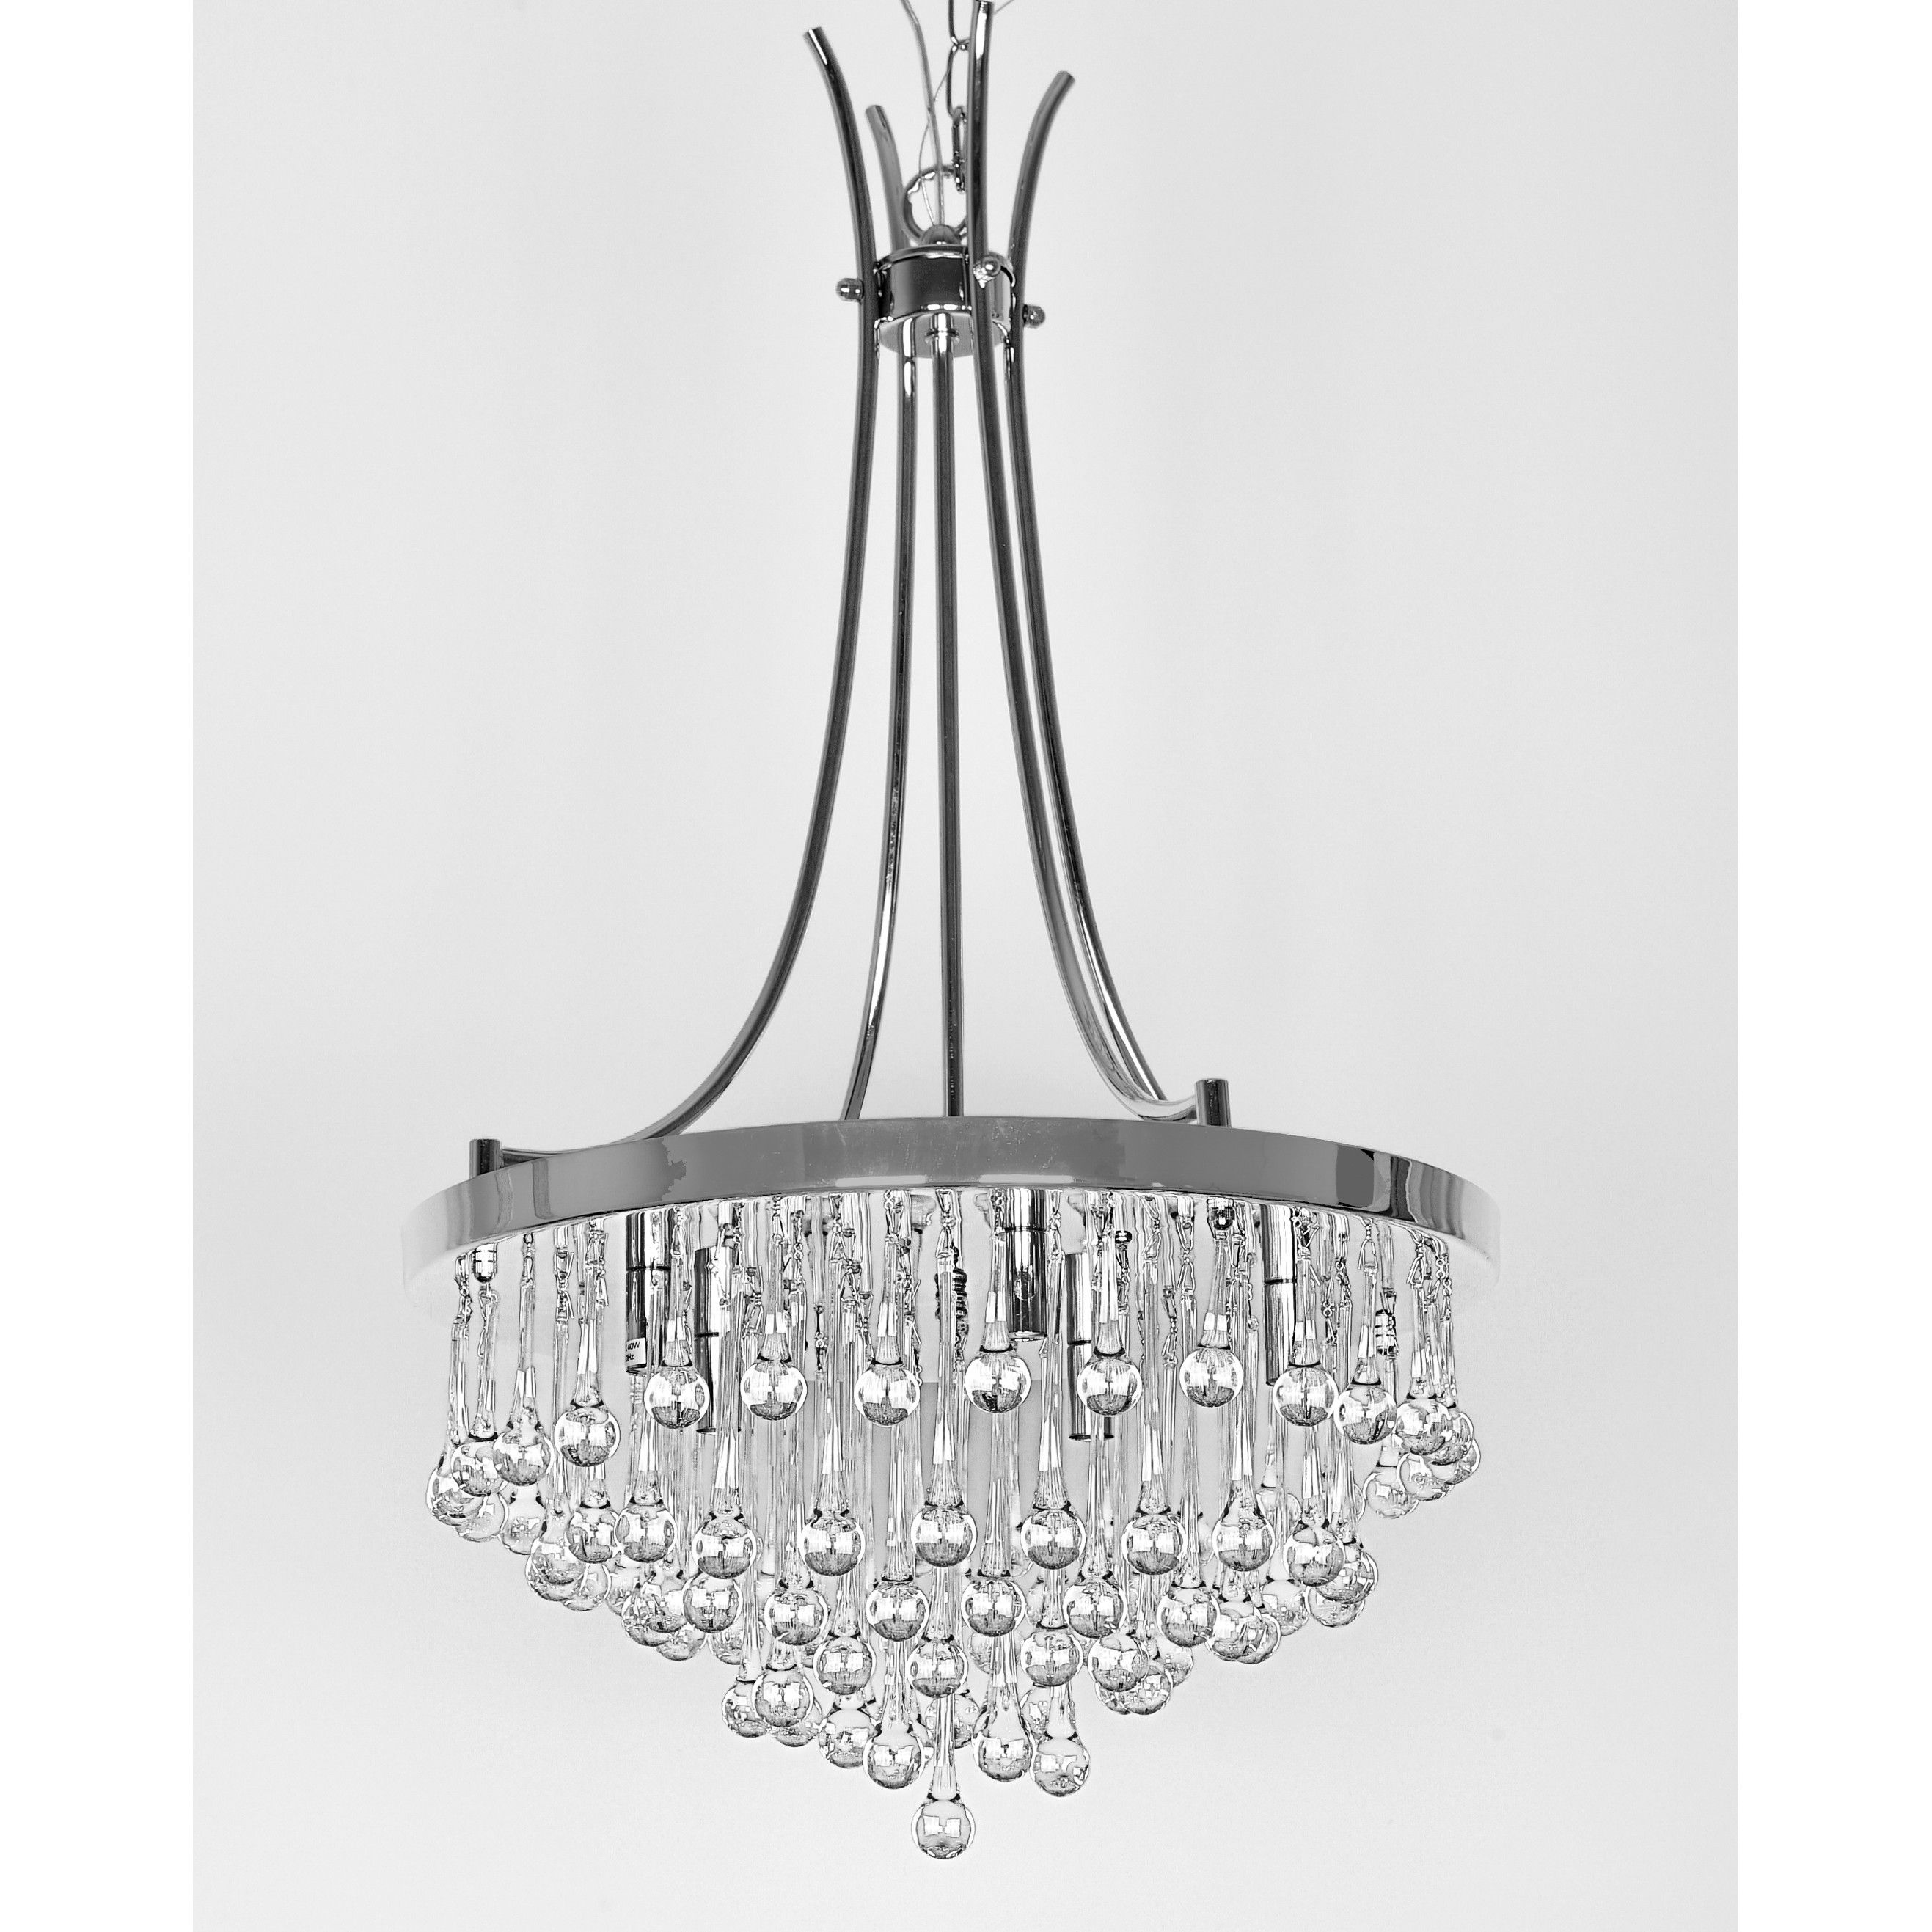 Wellyer Bacchus 5 Light Crystal Chandelier Girls Room Chandelier Iron Chandeliers Chandelier